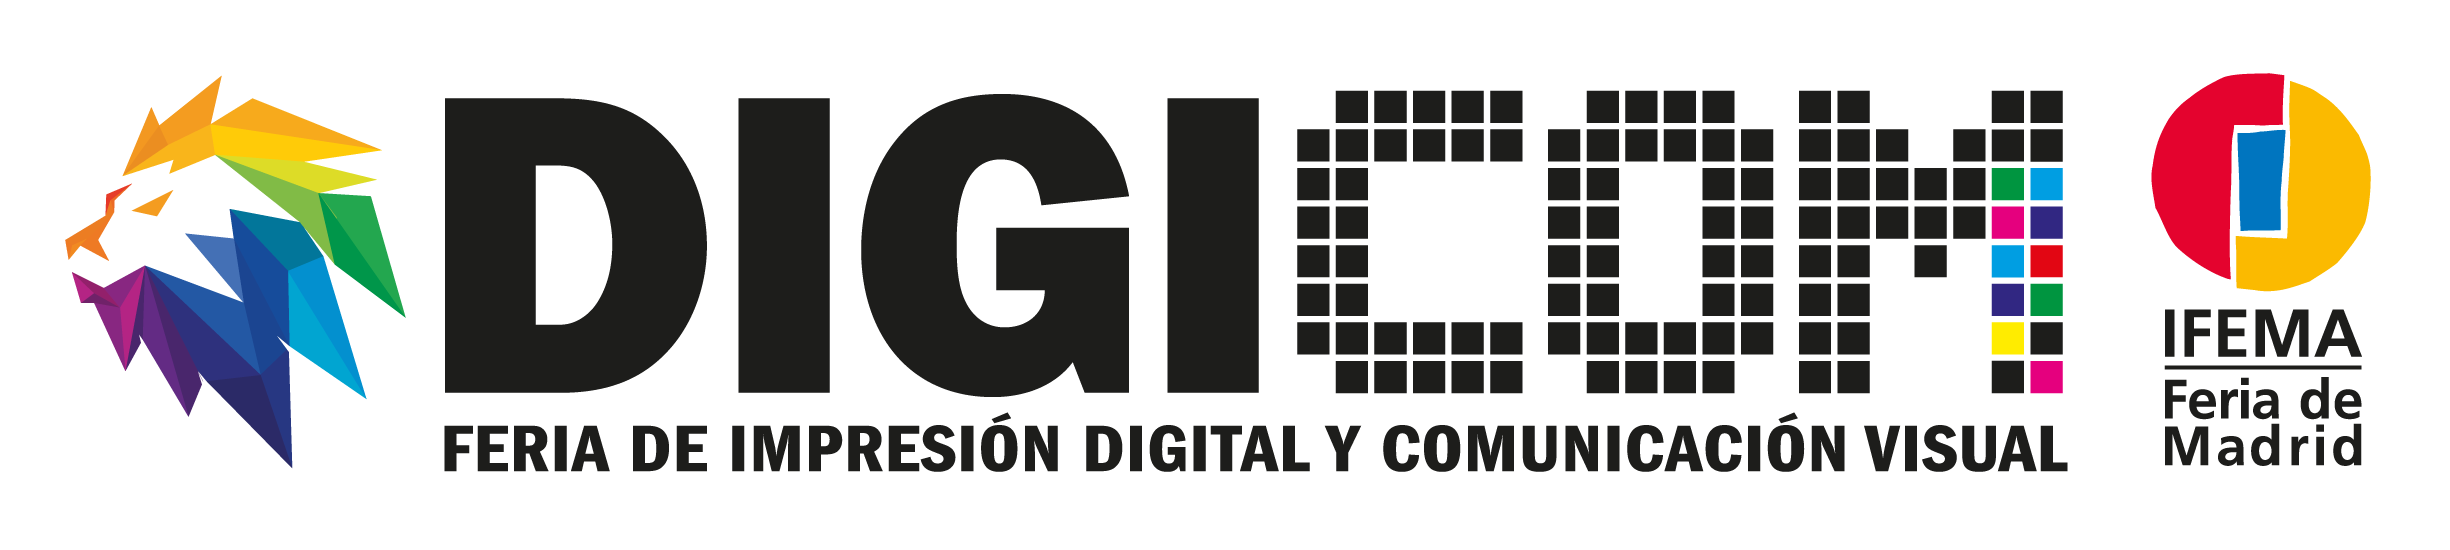 DIGICOM-logo-STM-Develop